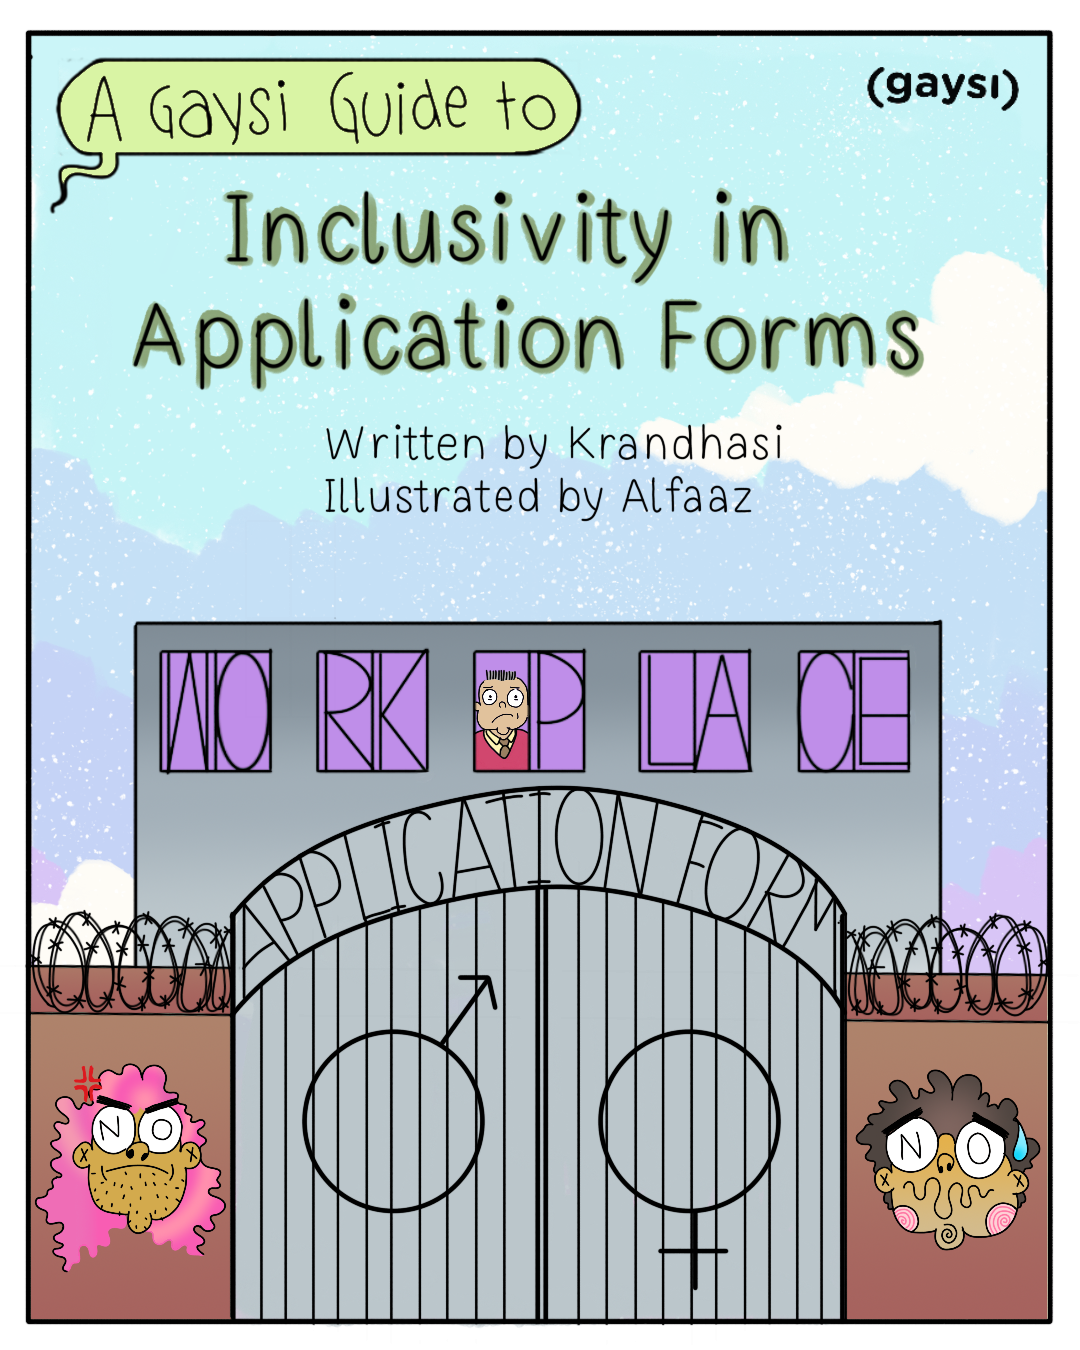 A Gaysi Guide To Inclusivity In Application Forms